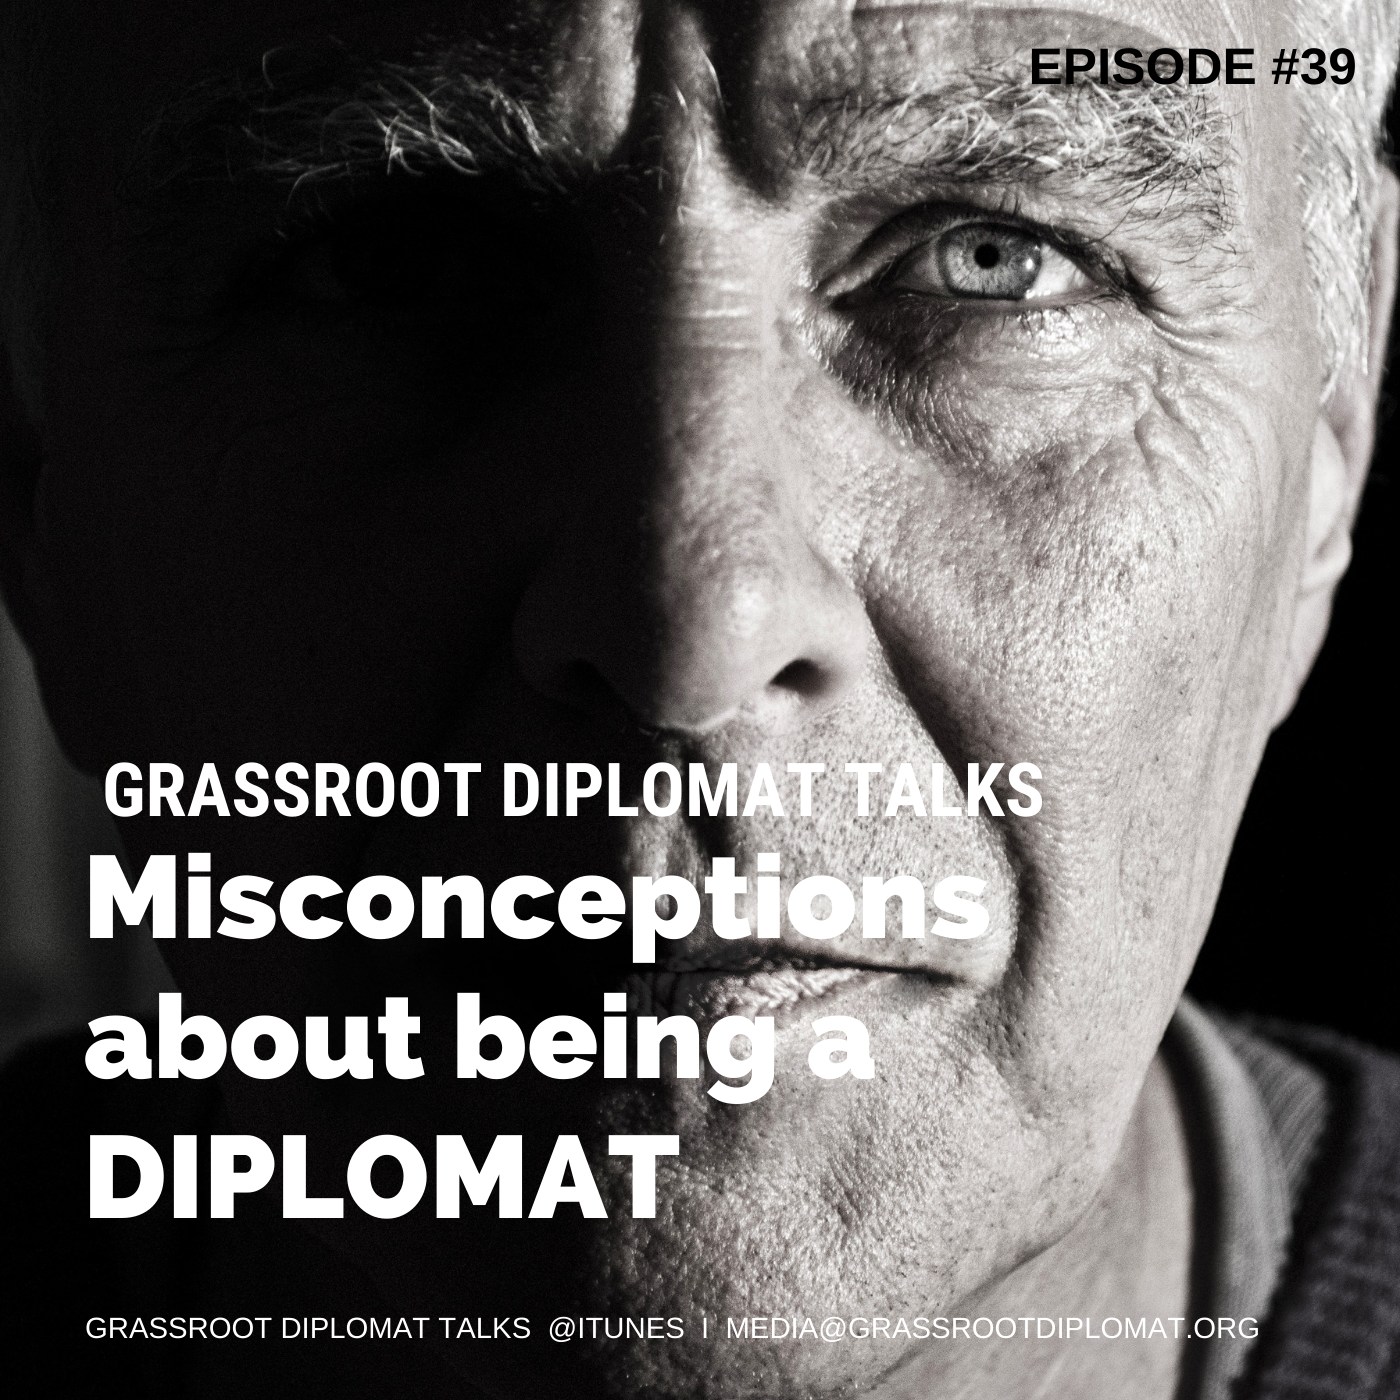 Misconceptions about being a diplomat